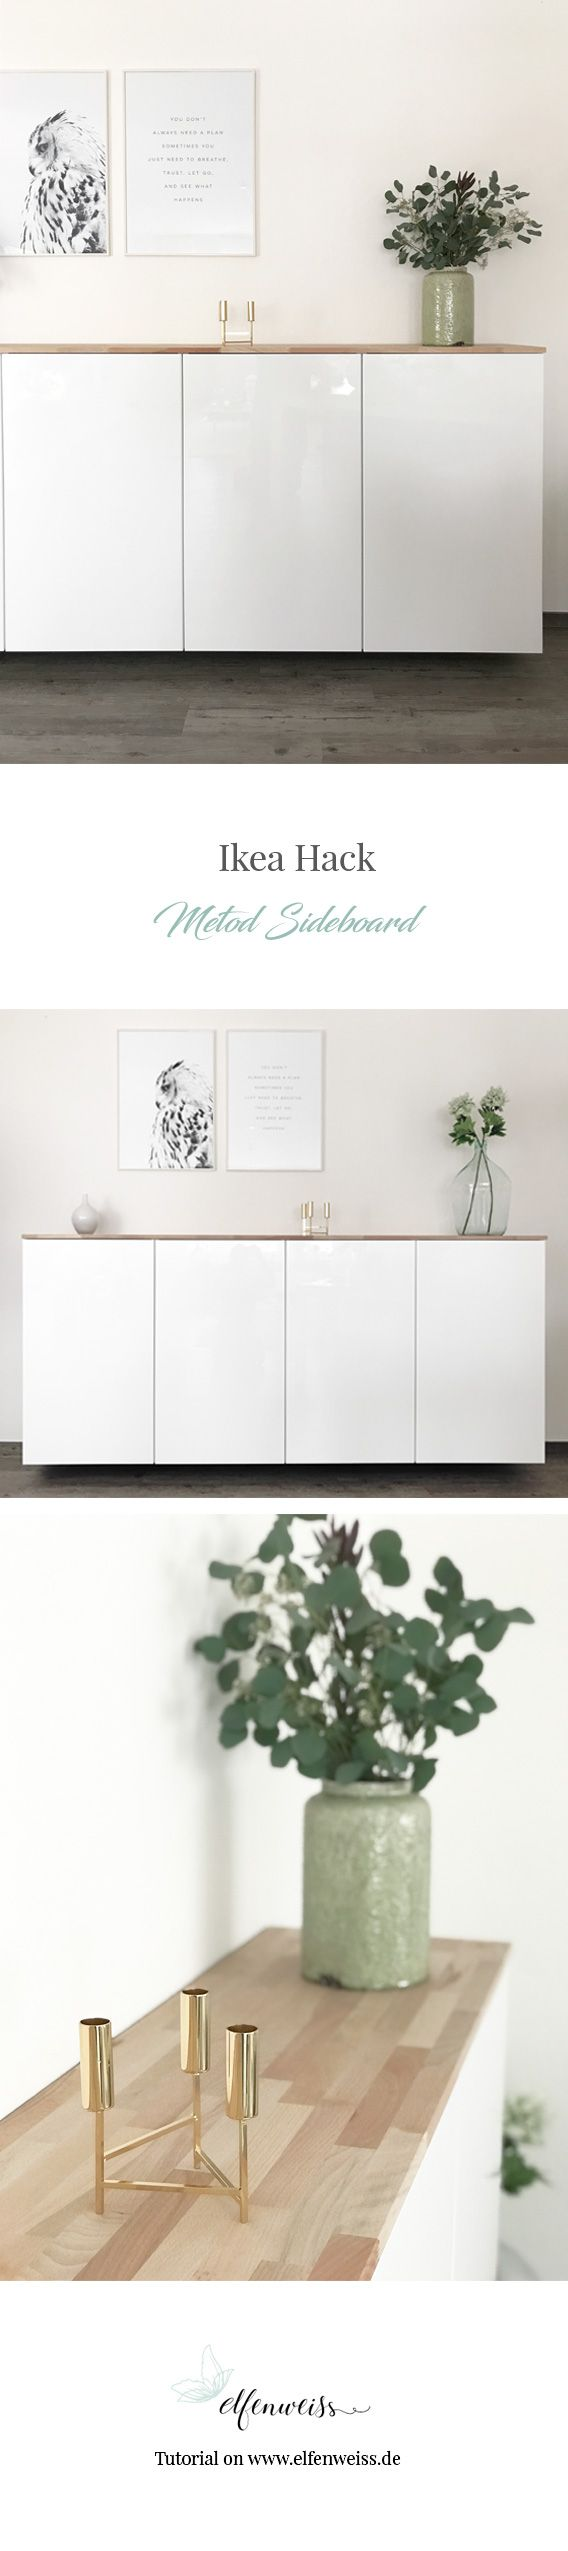 ikea hack metod k chenschrank als sideboard elfenweiss bild. Black Bedroom Furniture Sets. Home Design Ideas